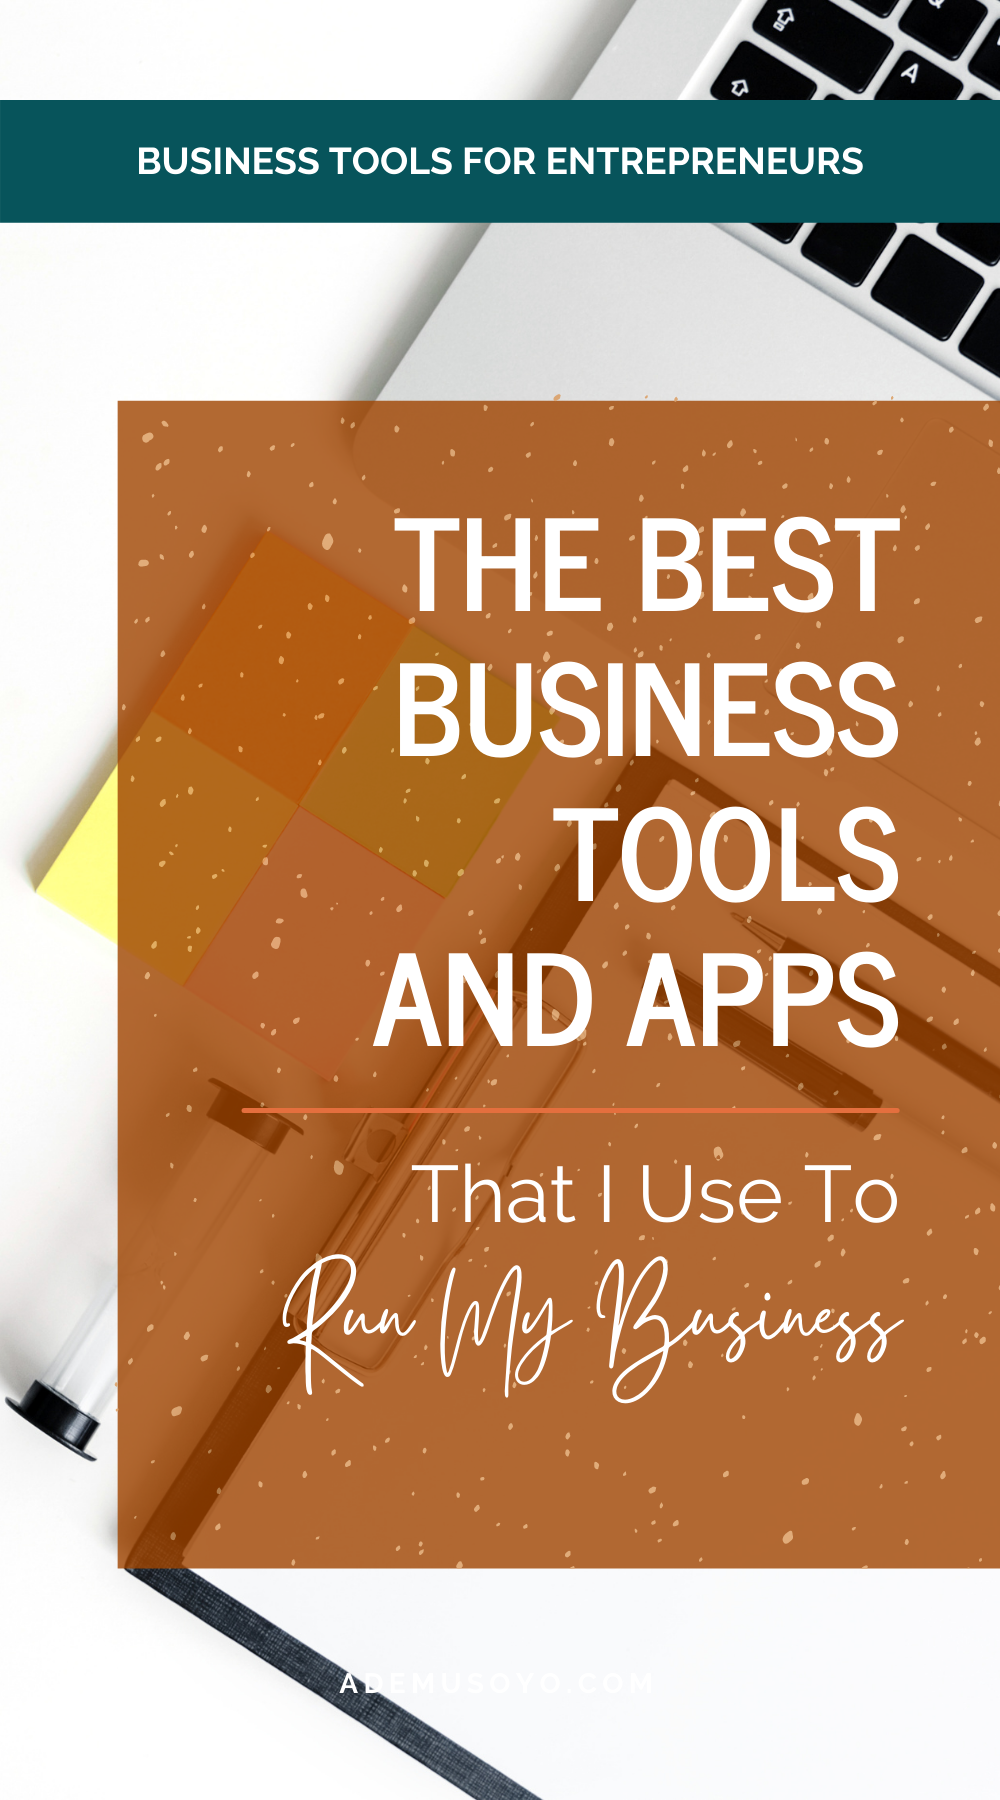 Business Tools & Software Must-Haves For Entrepreneurs and Small Business Owners